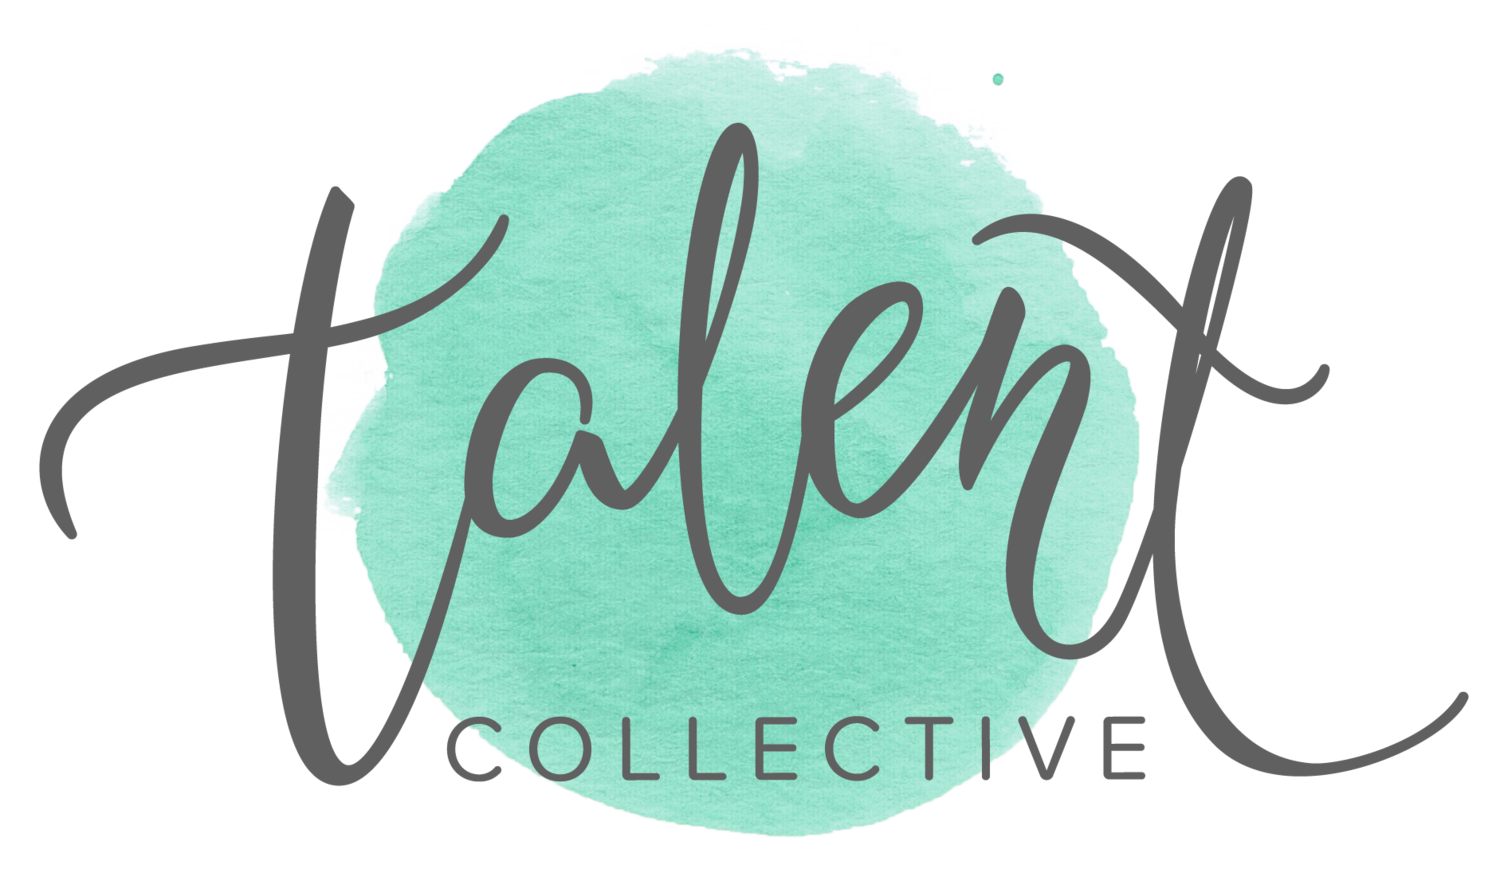 Talent Collective